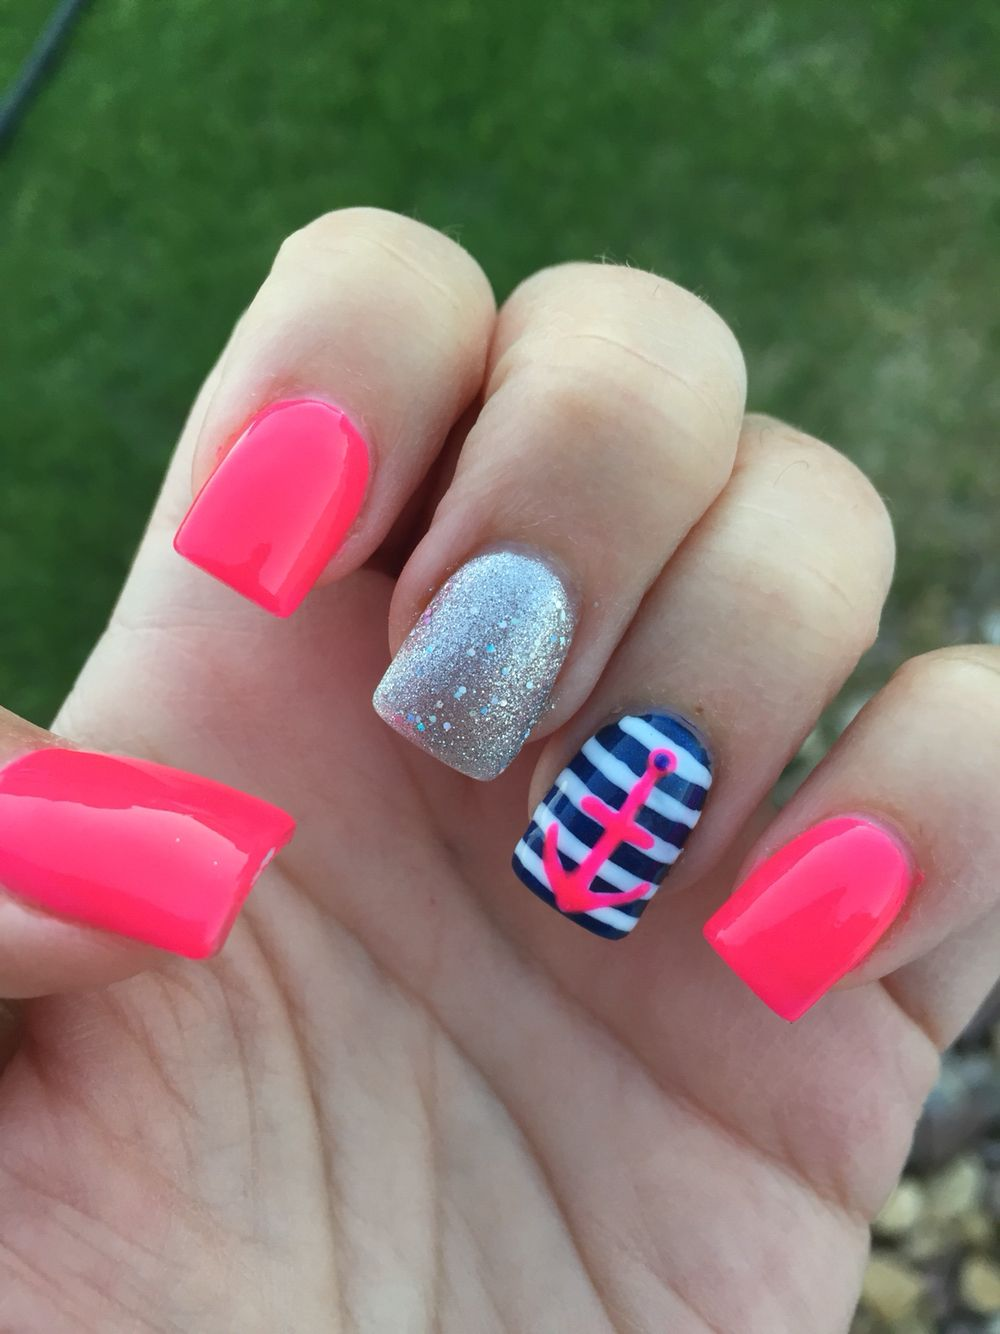 I love the hot pink and navy together